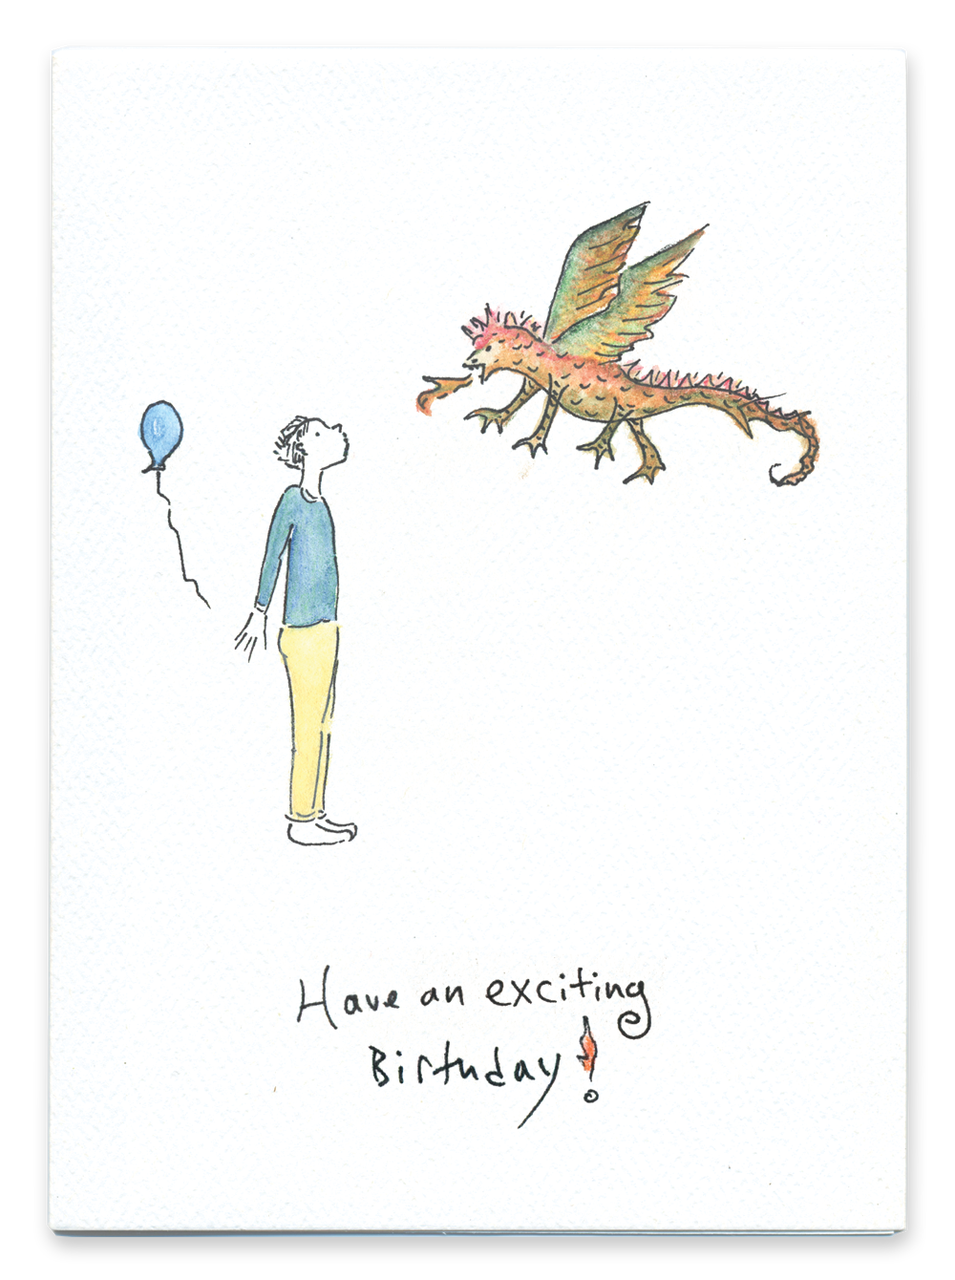 Have an Exciting Birthday